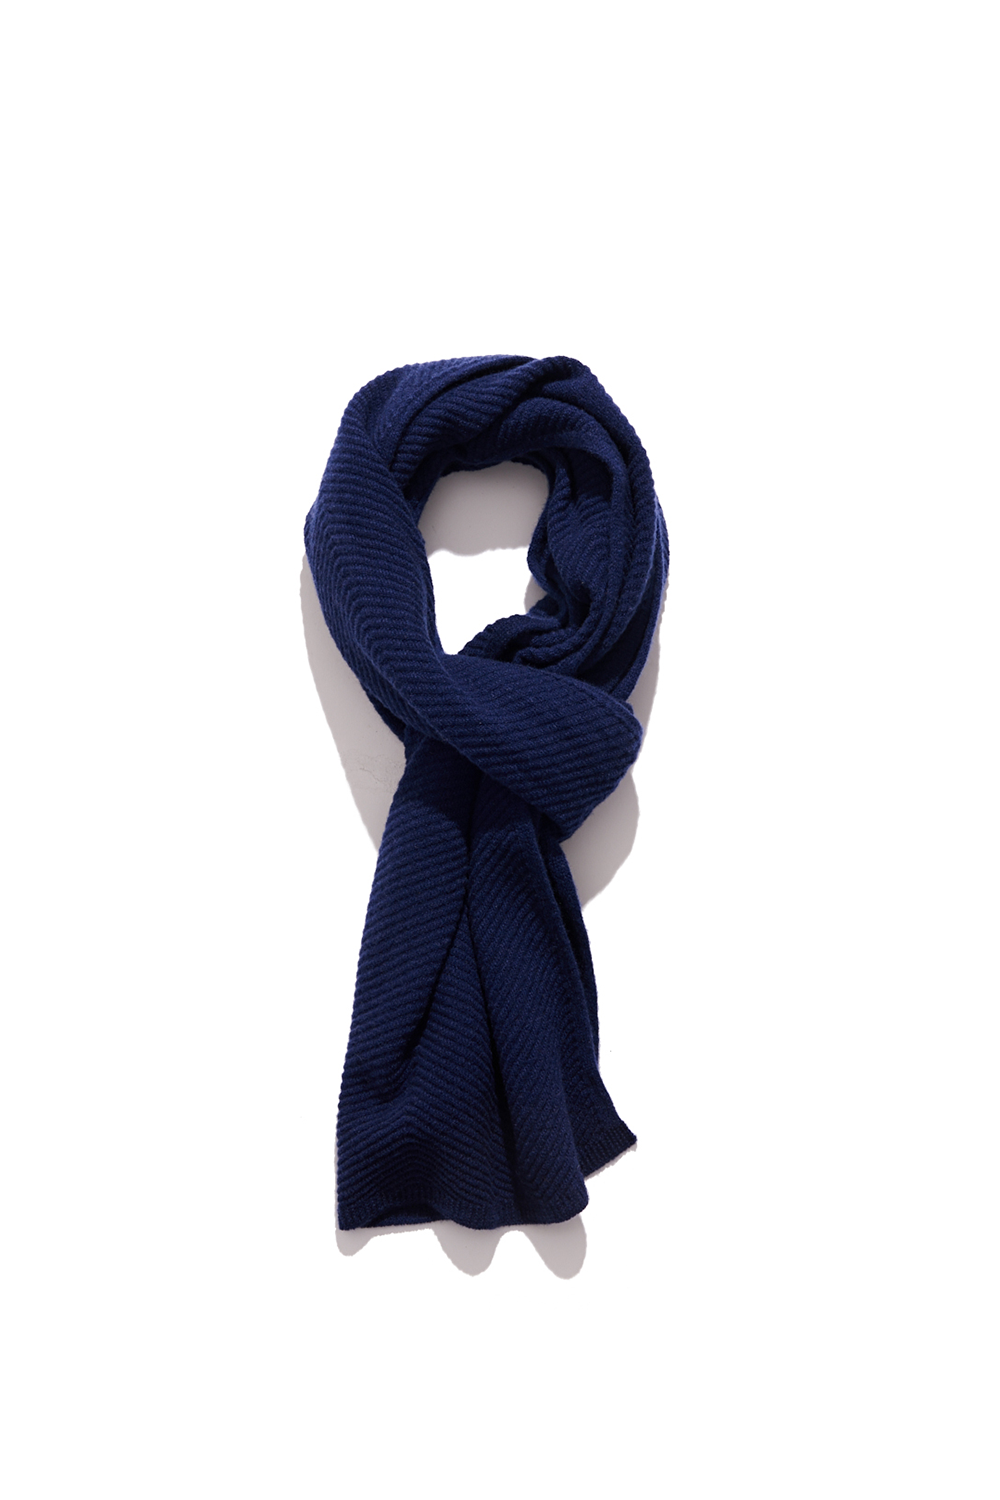 Premium pure cashmere100 whole-garment knitting shawl and scarf - Royal navy (인기 상품)